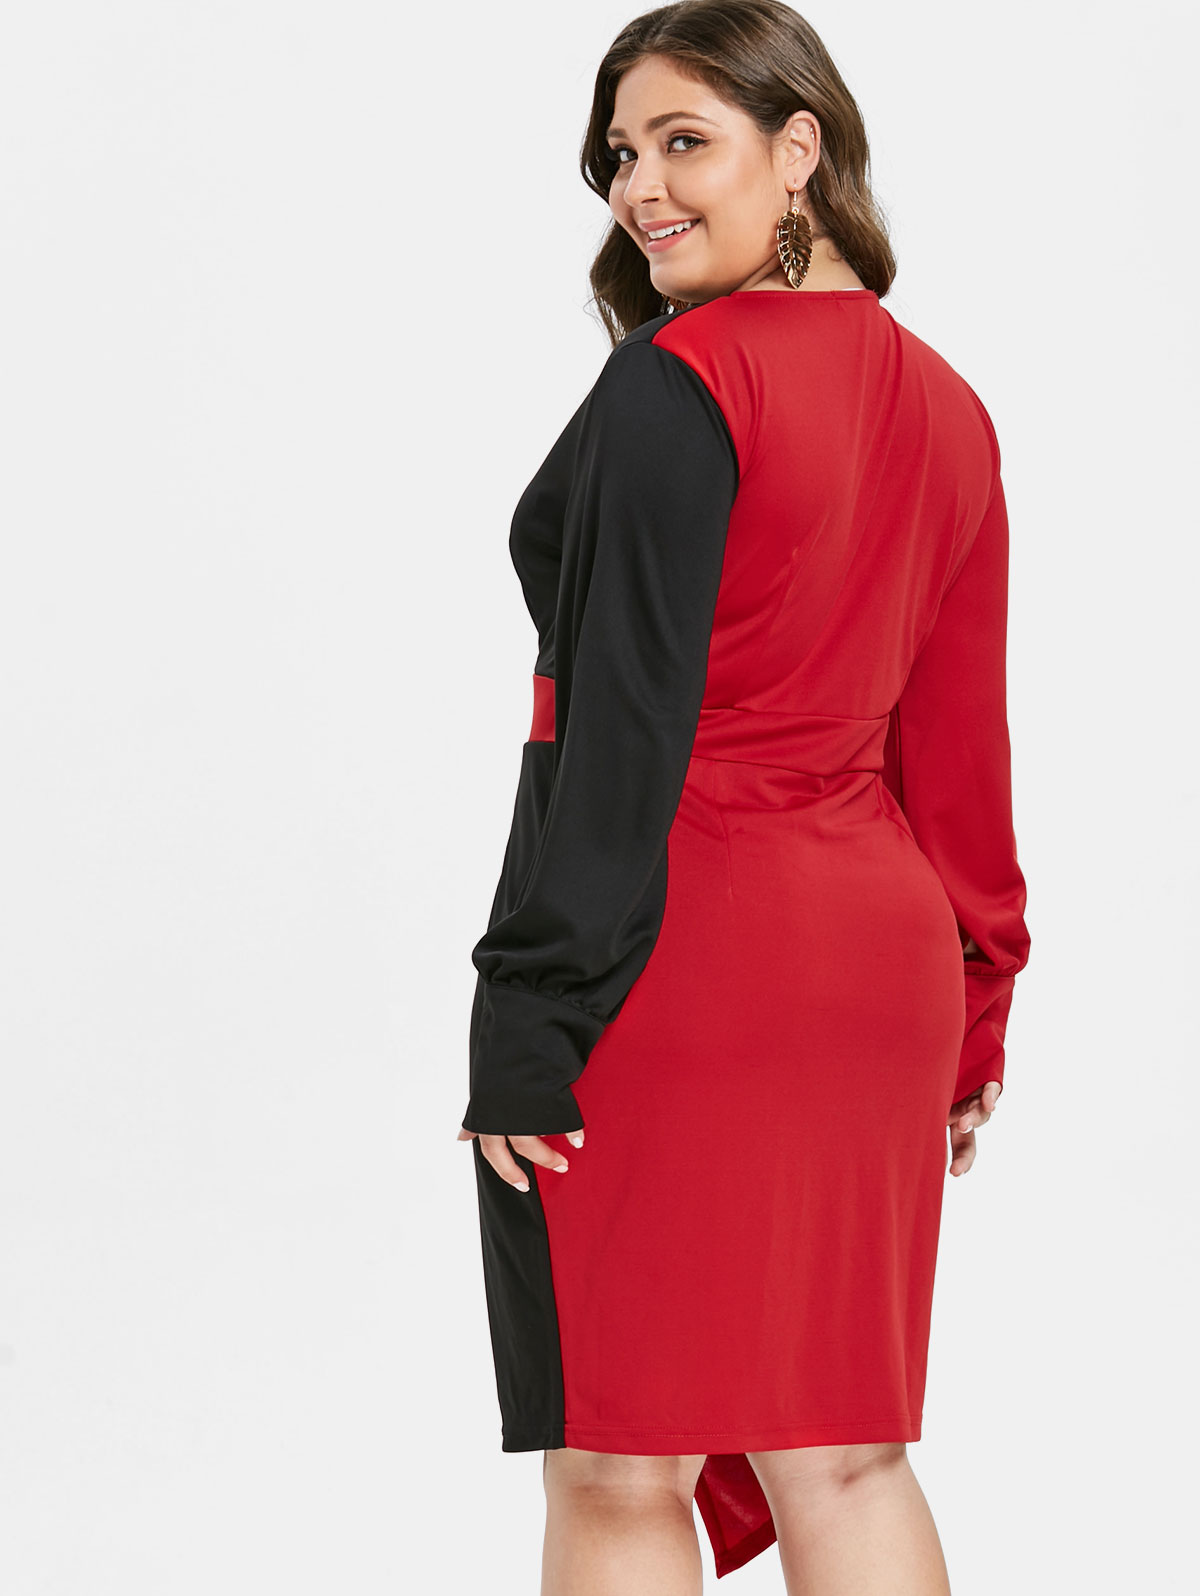 Silhouette Bodycon Dresses Length Knee-Length Neckline Plunging Neck Sleeve  Length Long Sleeves Pattern Type Others With Belt No Season Fall  Weight 0.4940kg 62470e8d53b4